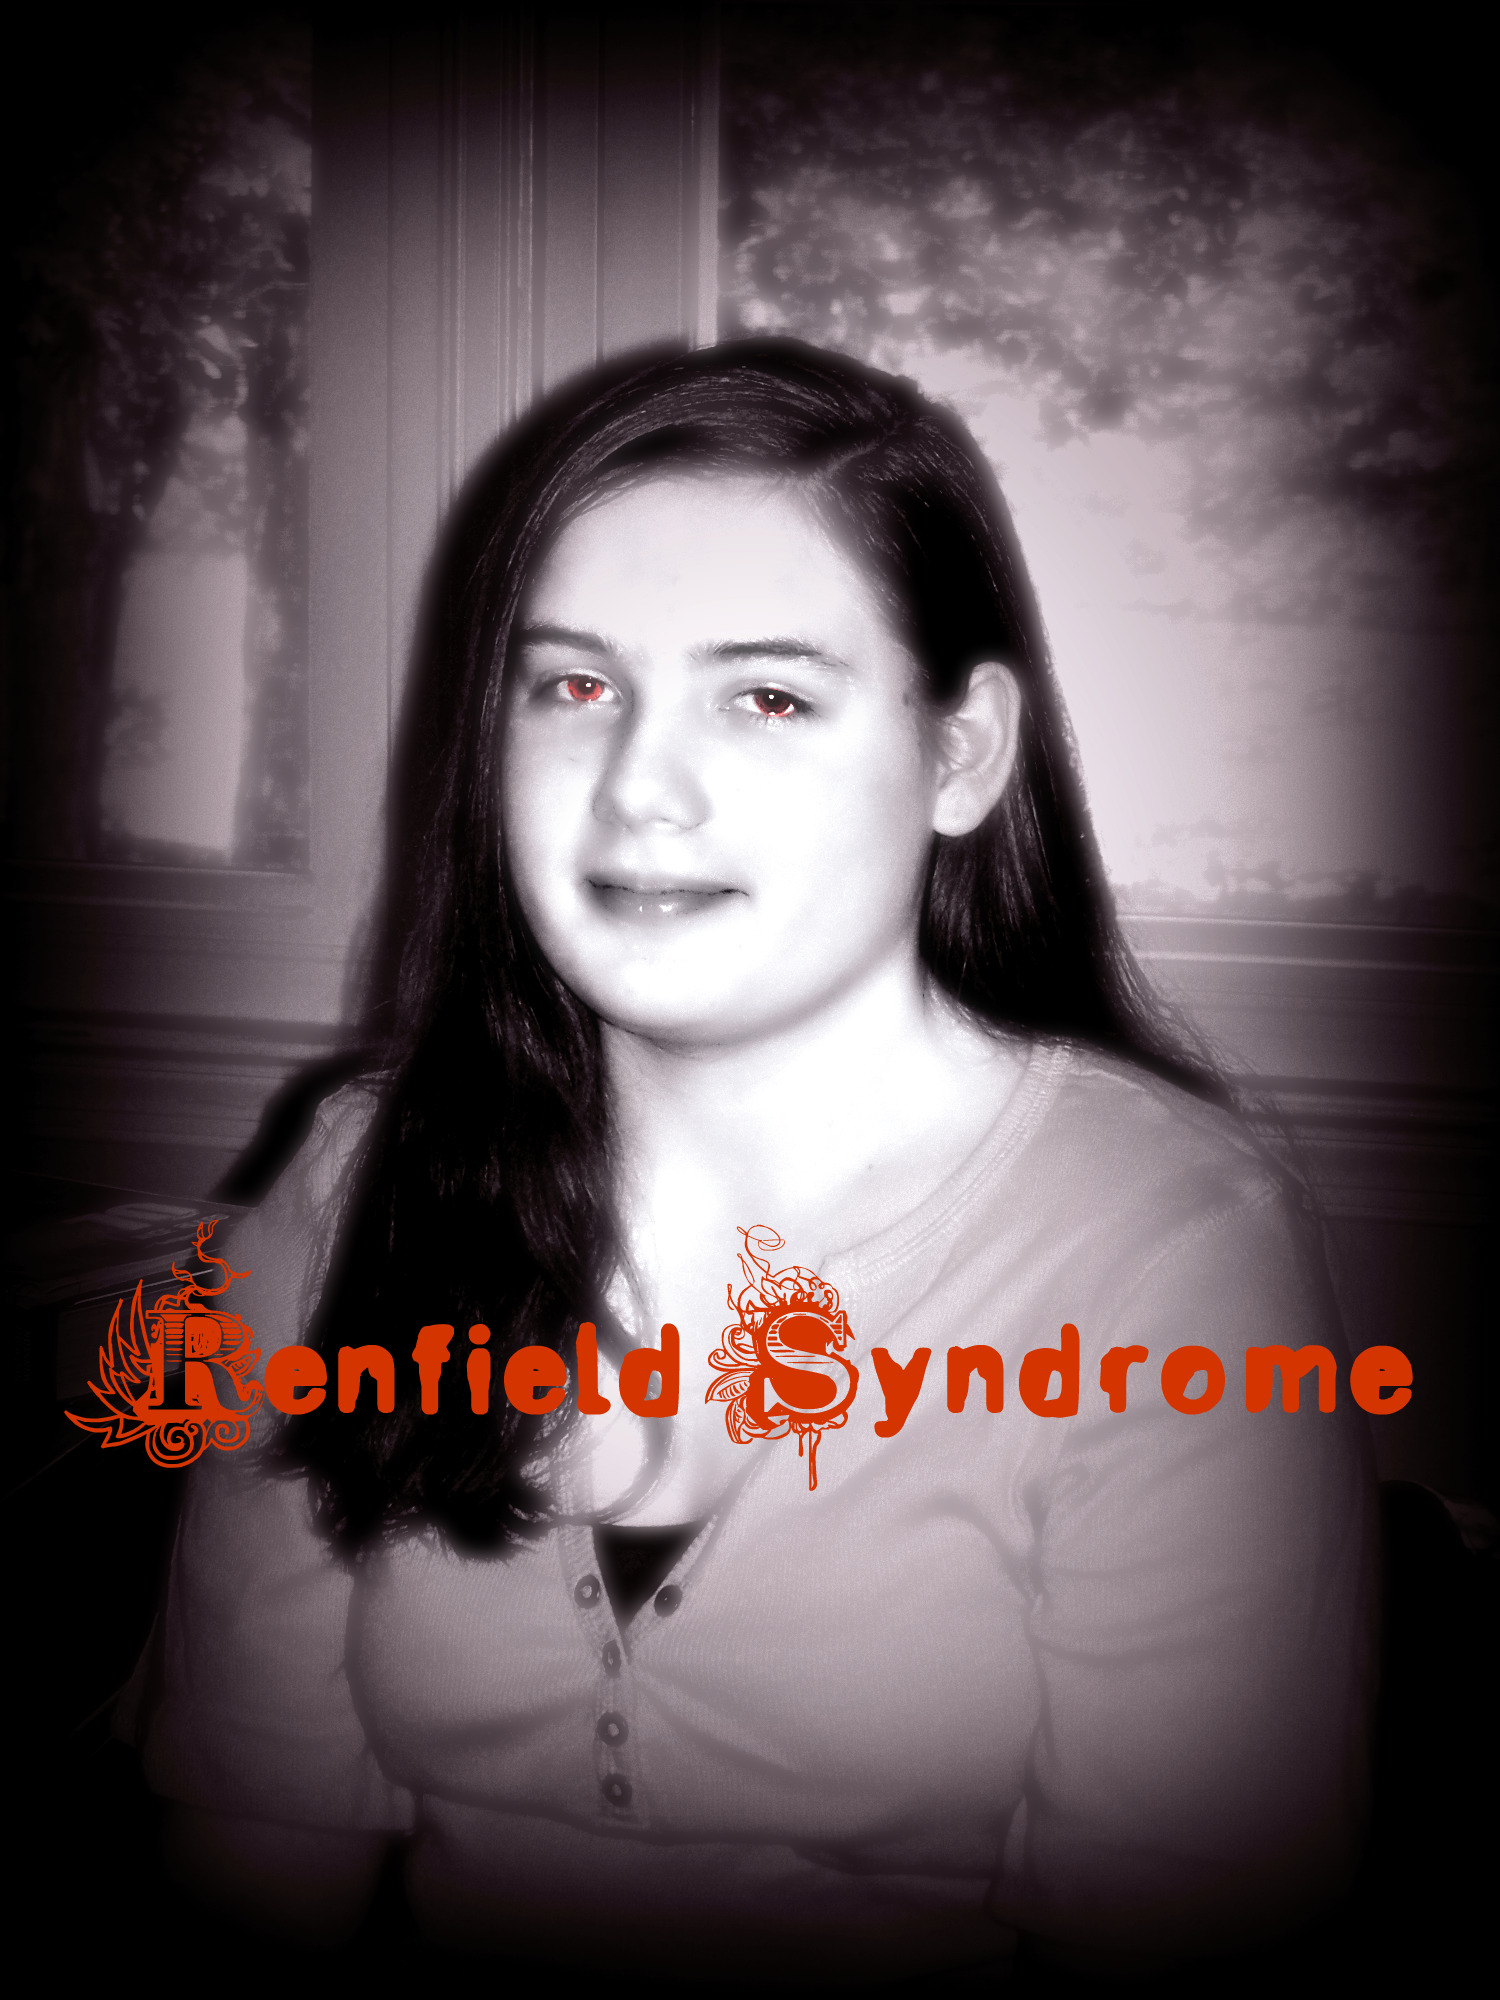 The Renfield Syndrome movie